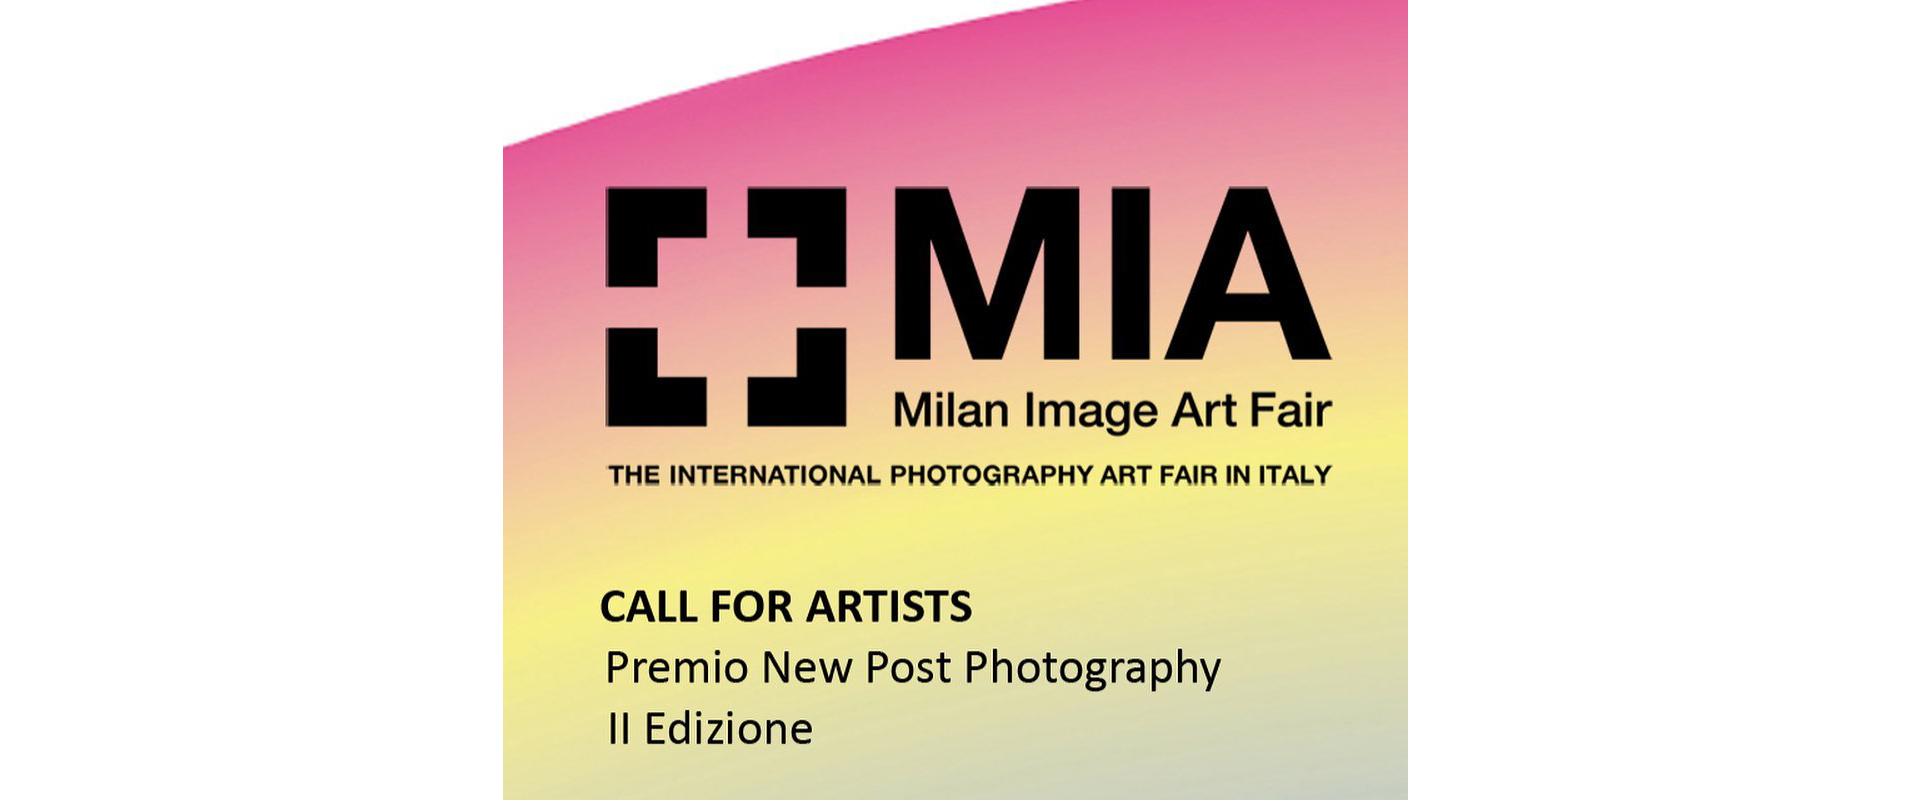 Milan Image Art Fair